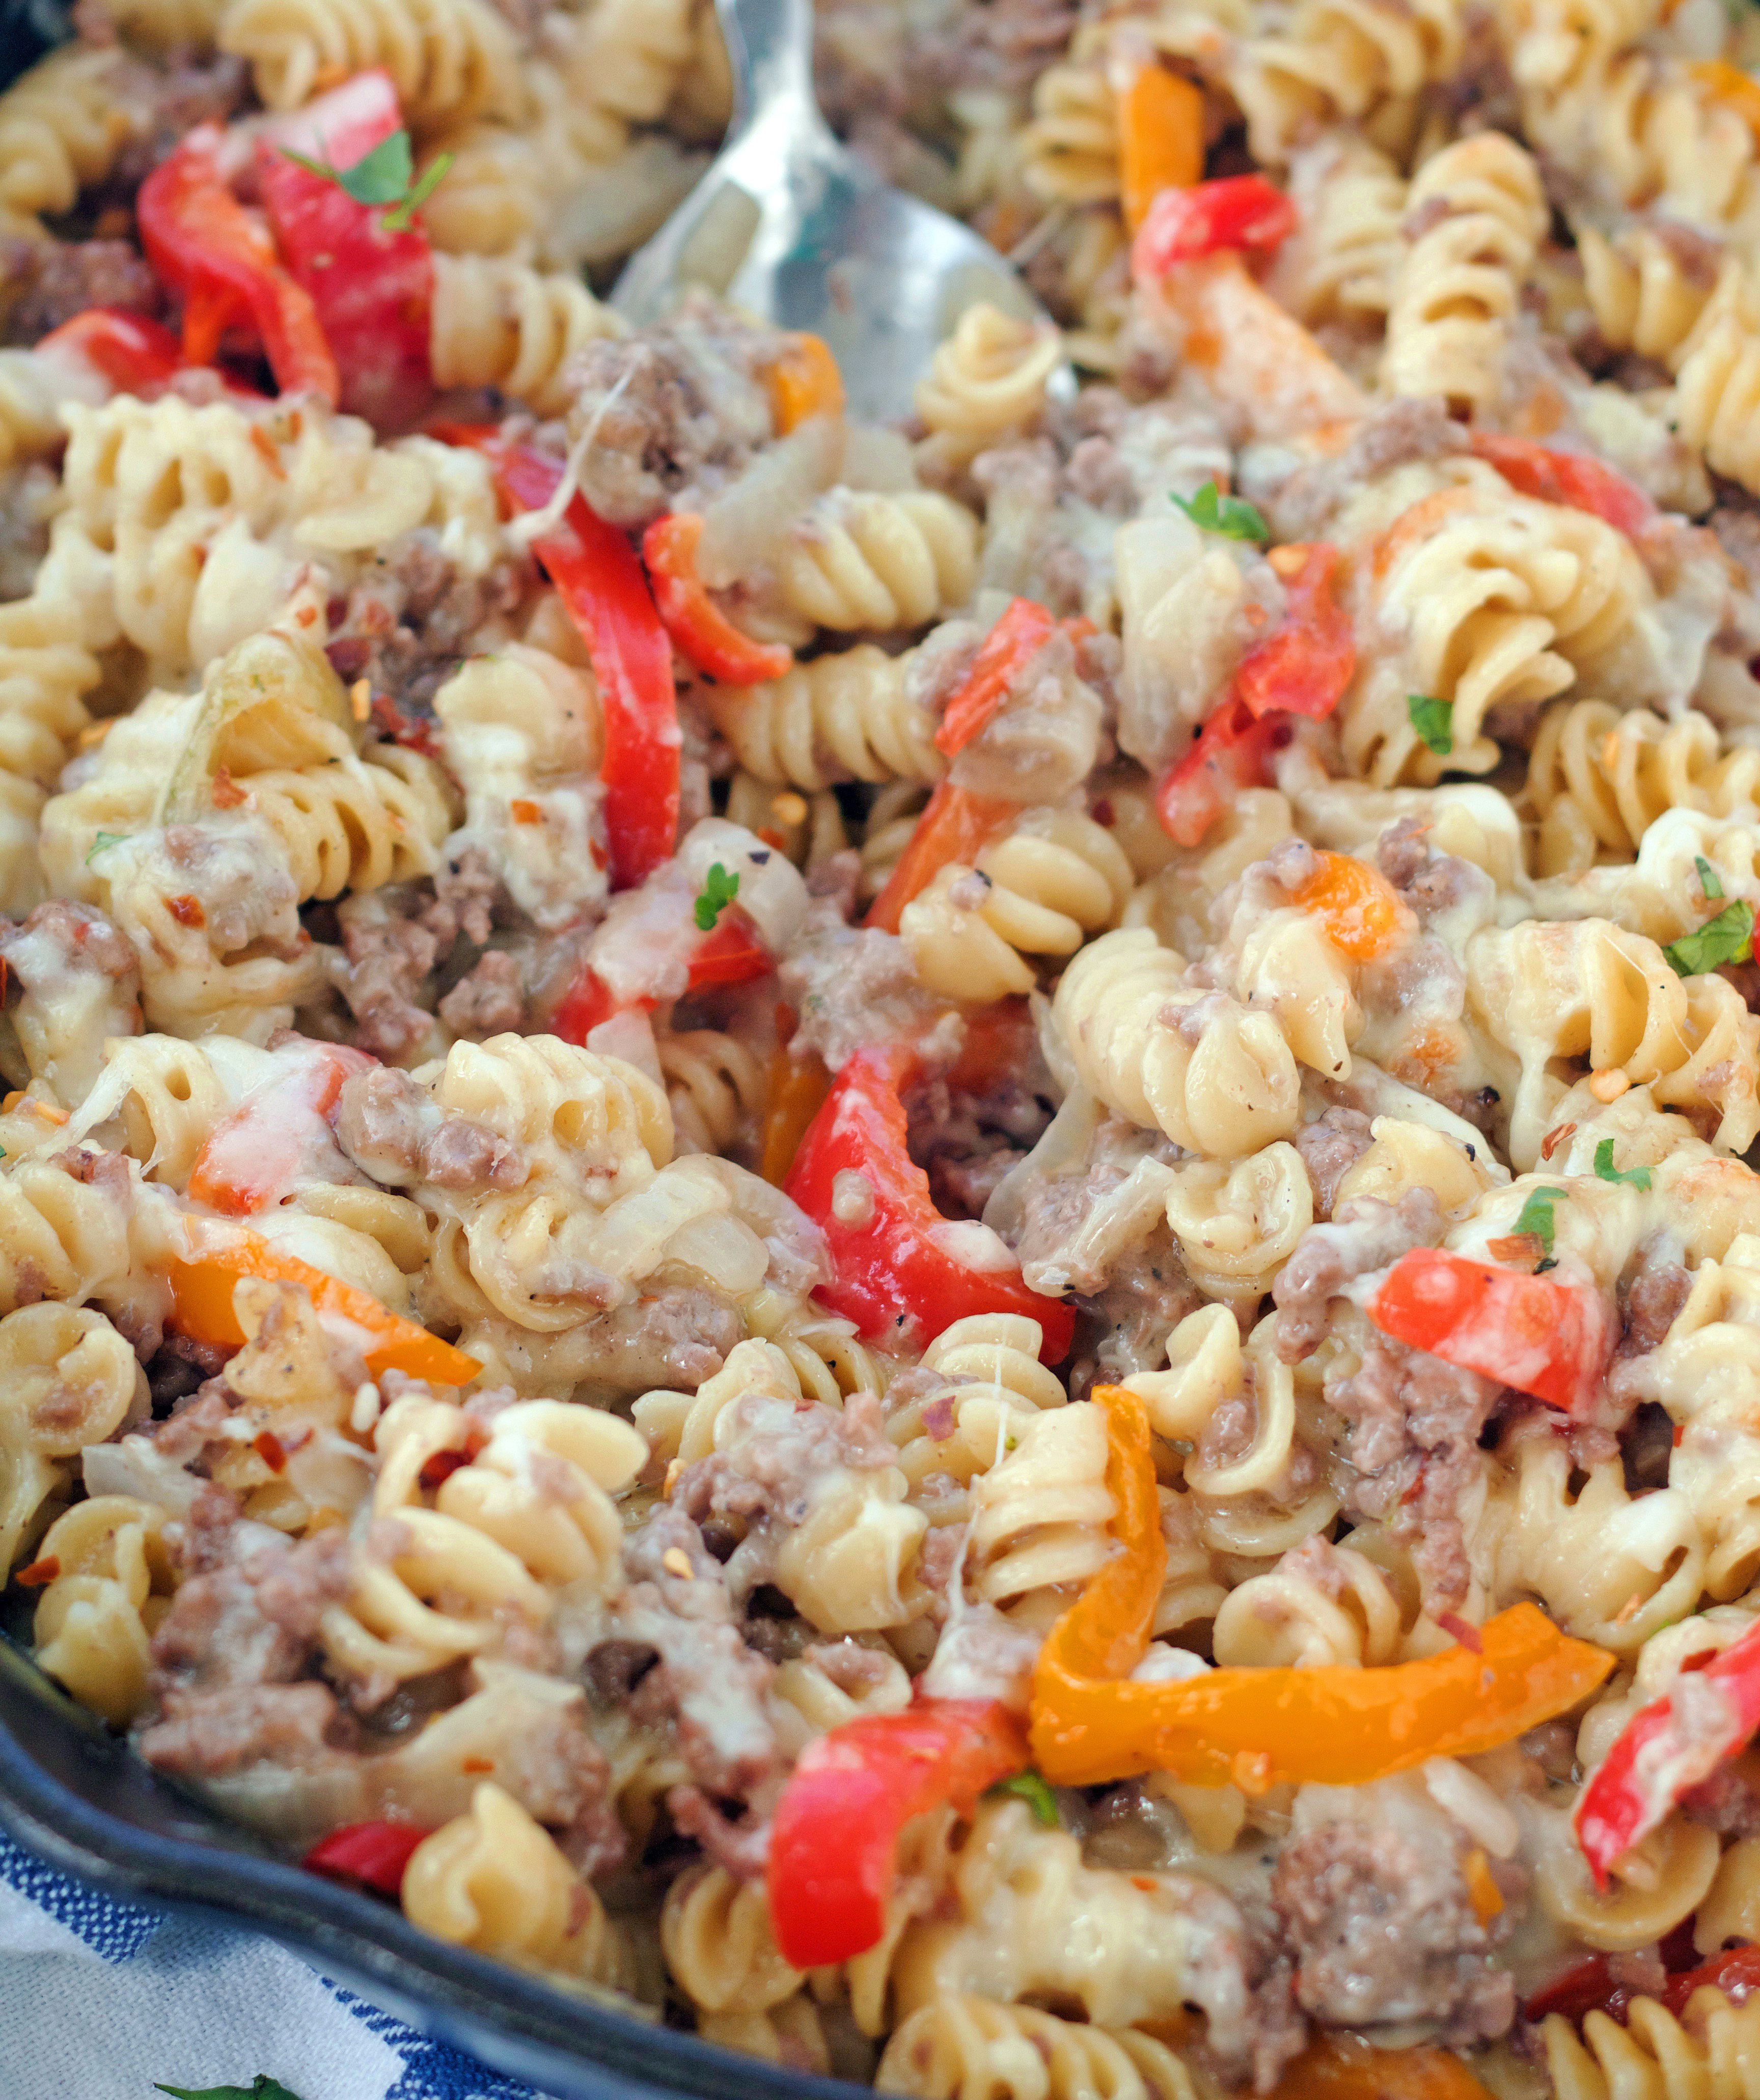 Teal Philly Cheesesteak Pasta Skillet Boys Baker Philly Cheesesteaks Near Me Philly Cheesesteak Recipe Not Sure What Your Comfort Food But At Our Housepasta Is Always At nice food Best Philly Cheesesteak